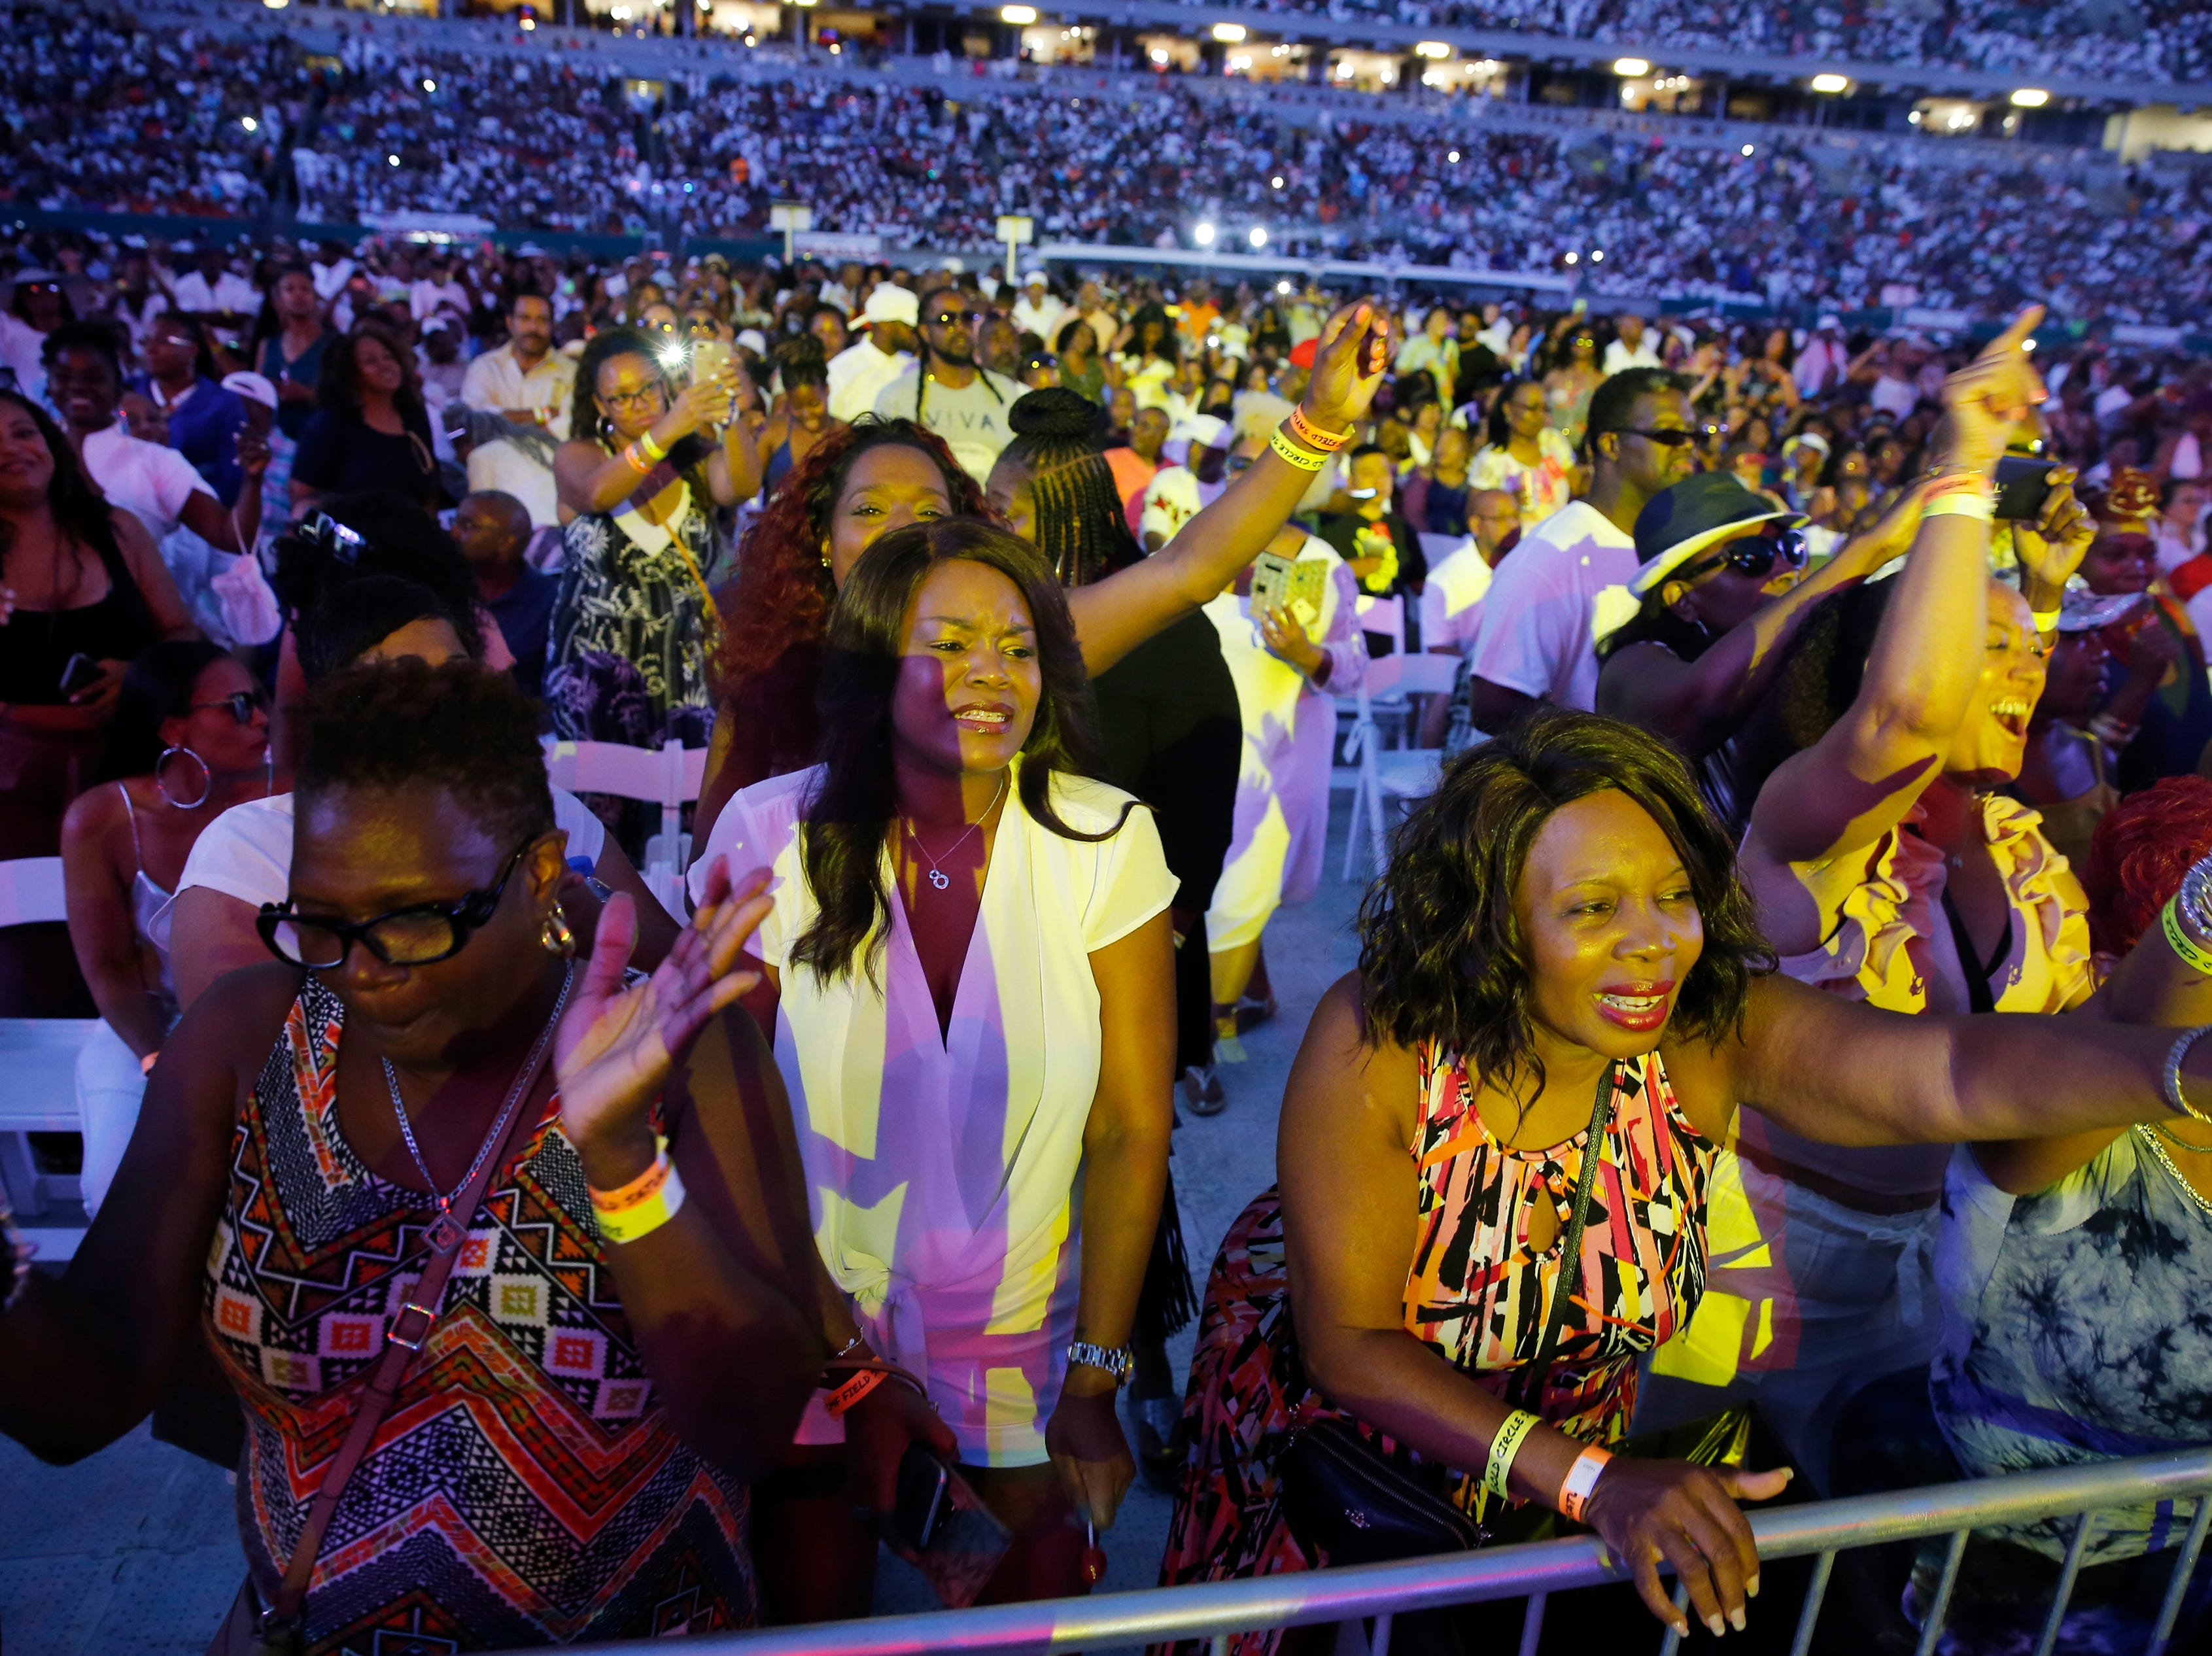 Music lovers sing along with Keith Sweat during the Cincinnati Music Festival.